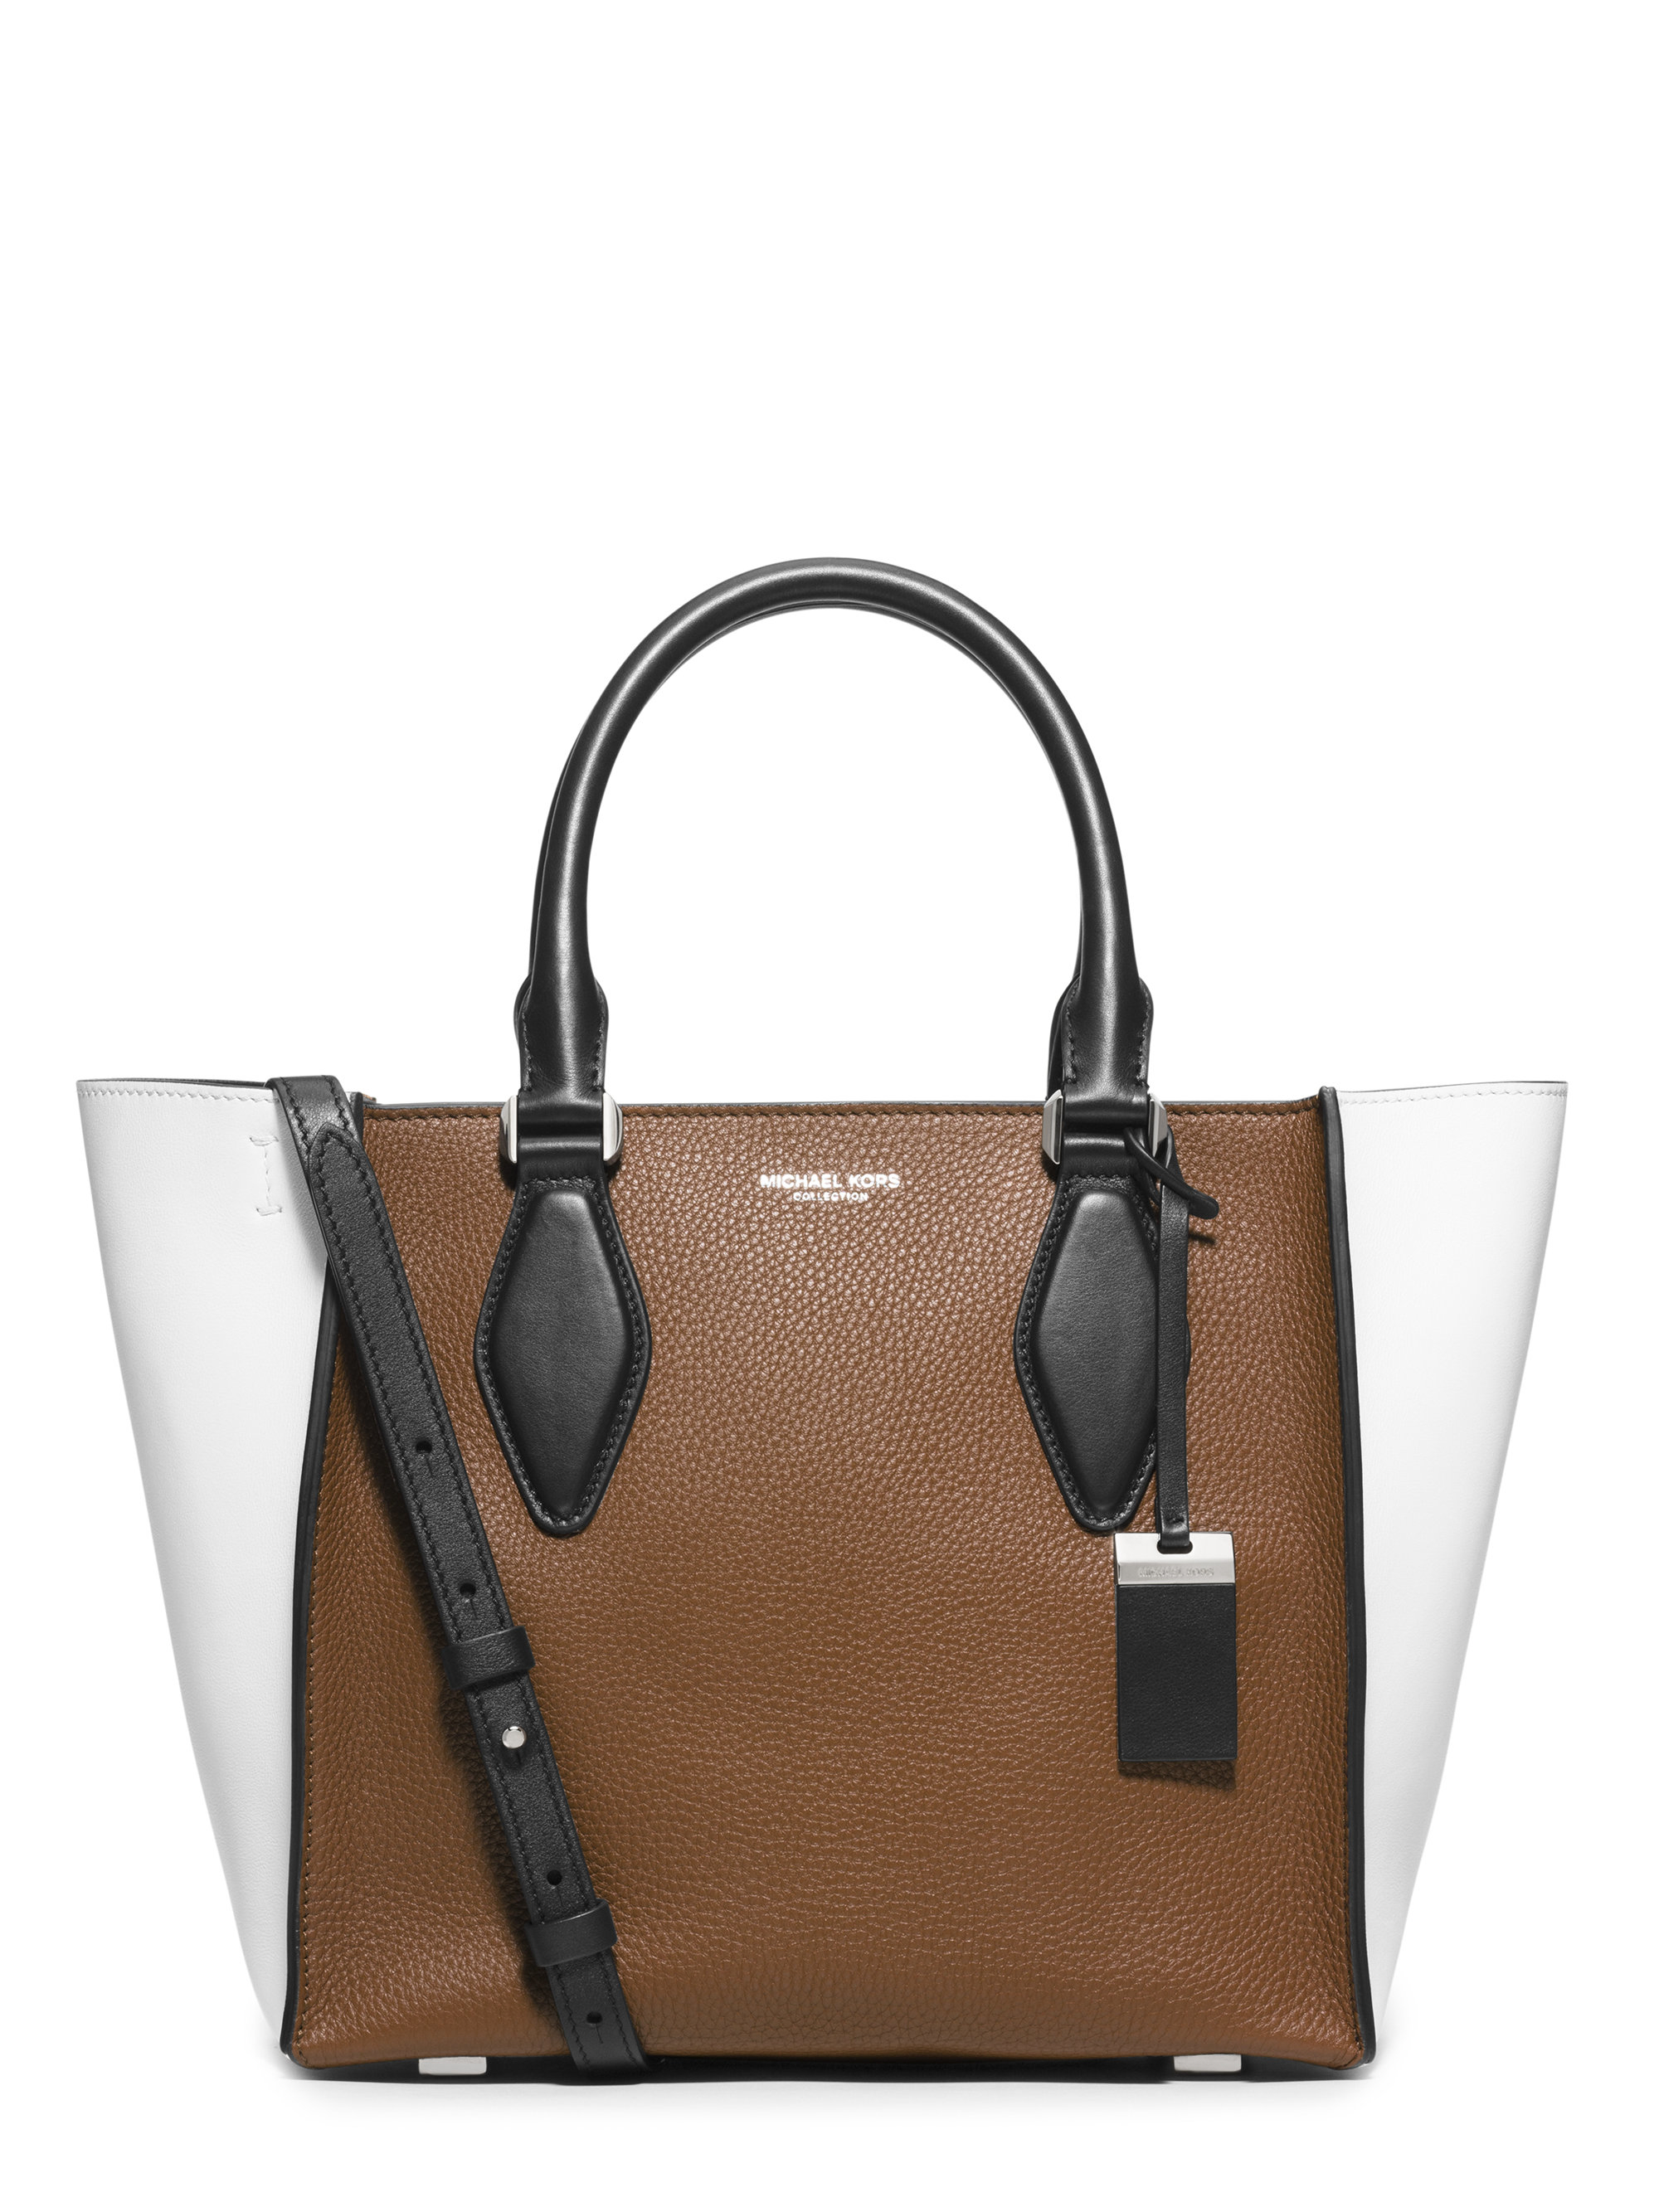 8fdc1d9fe10993 Michael Kors Gracie Medium Colorblock Leather Tote in Brown - Lyst